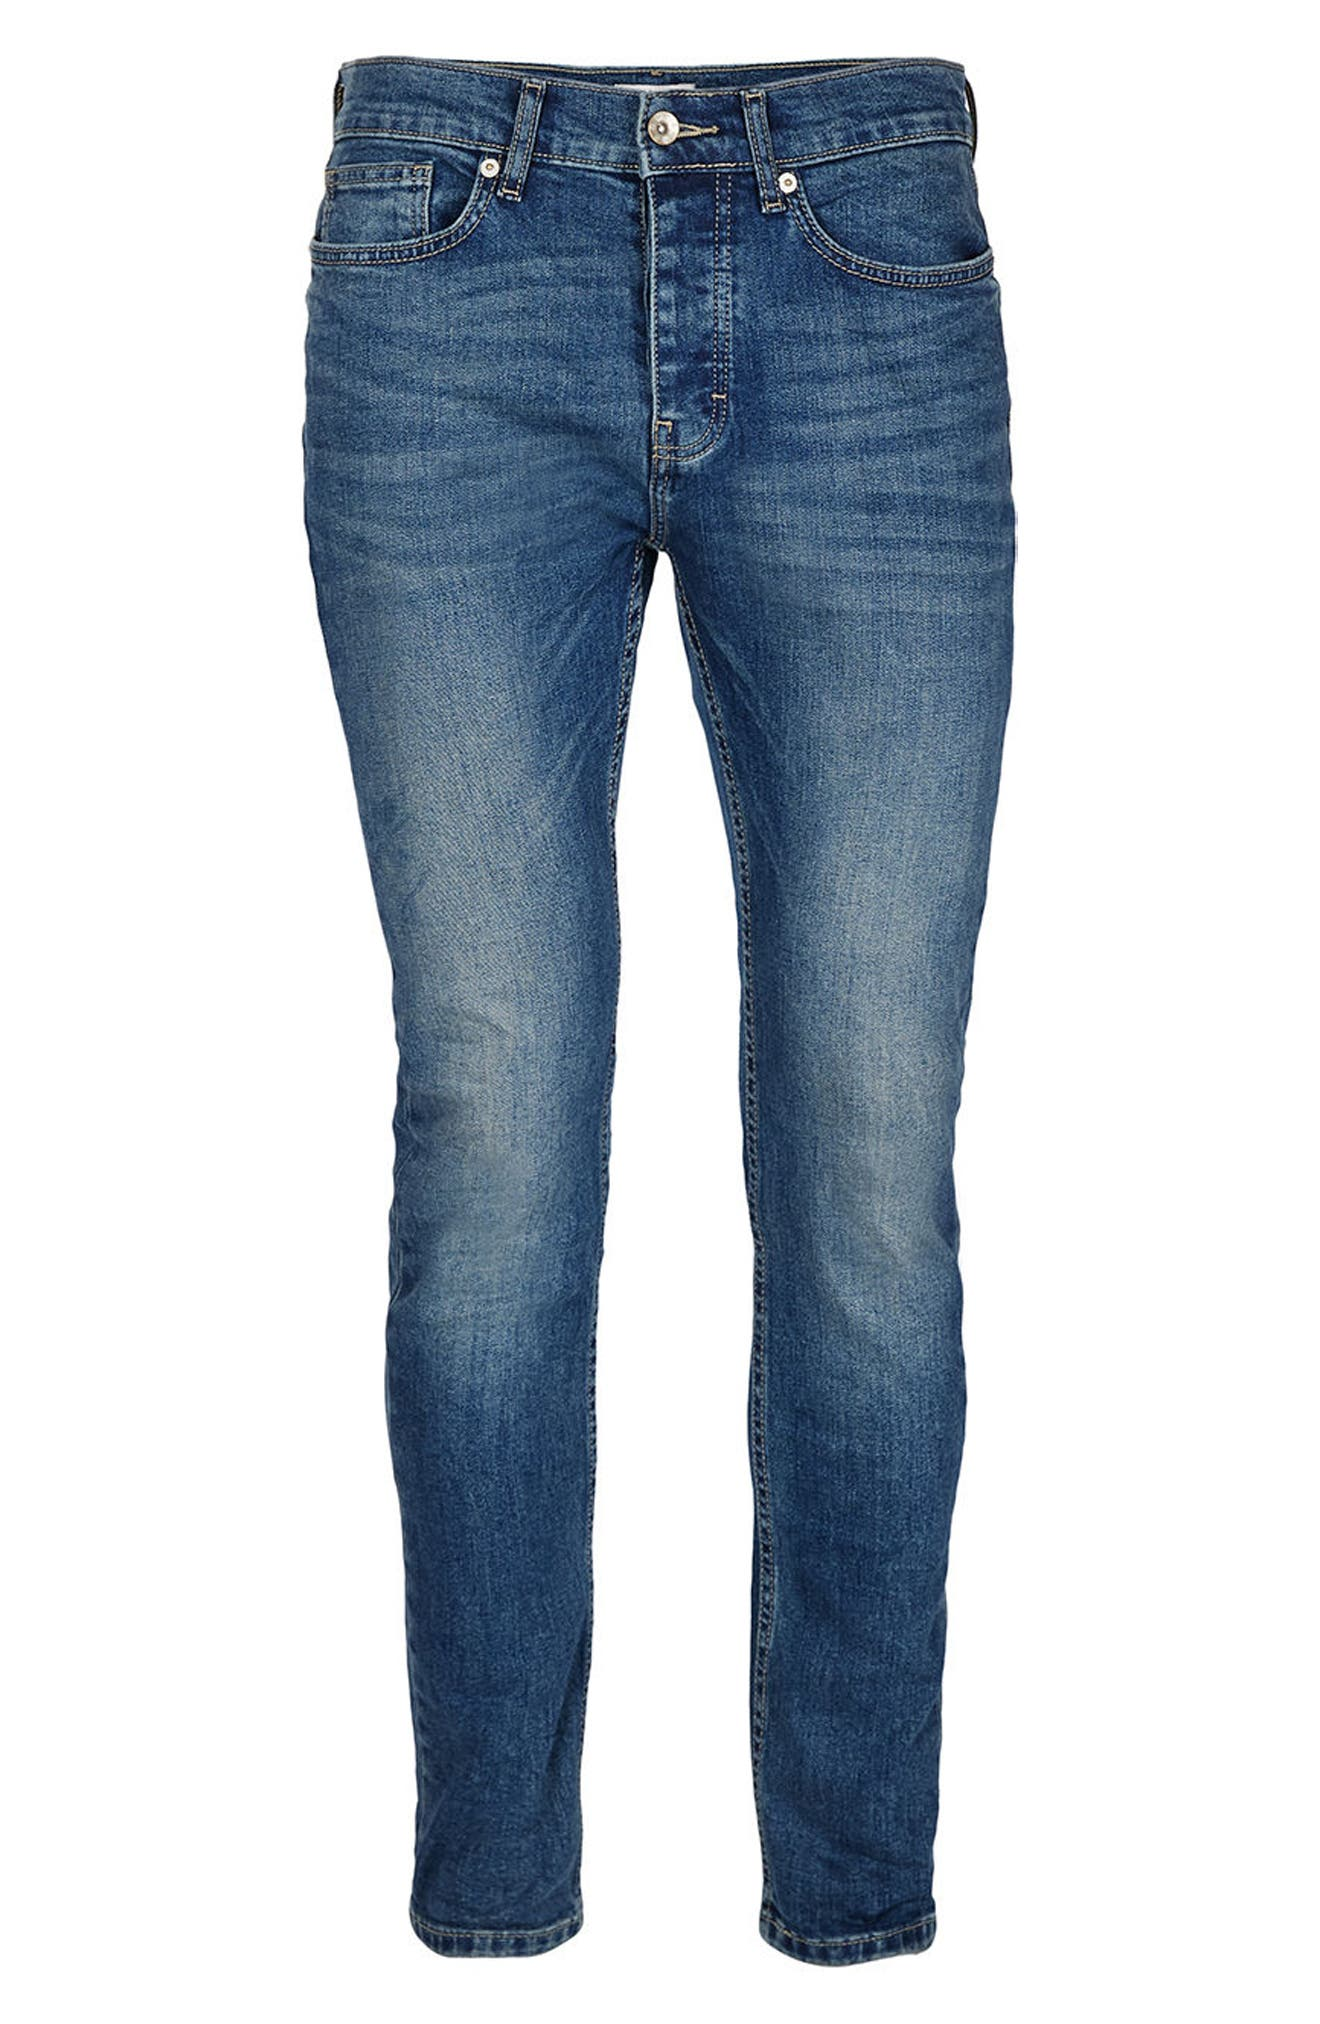 Stretch Skinny Jeans,                             Alternate thumbnail 4, color,                             420